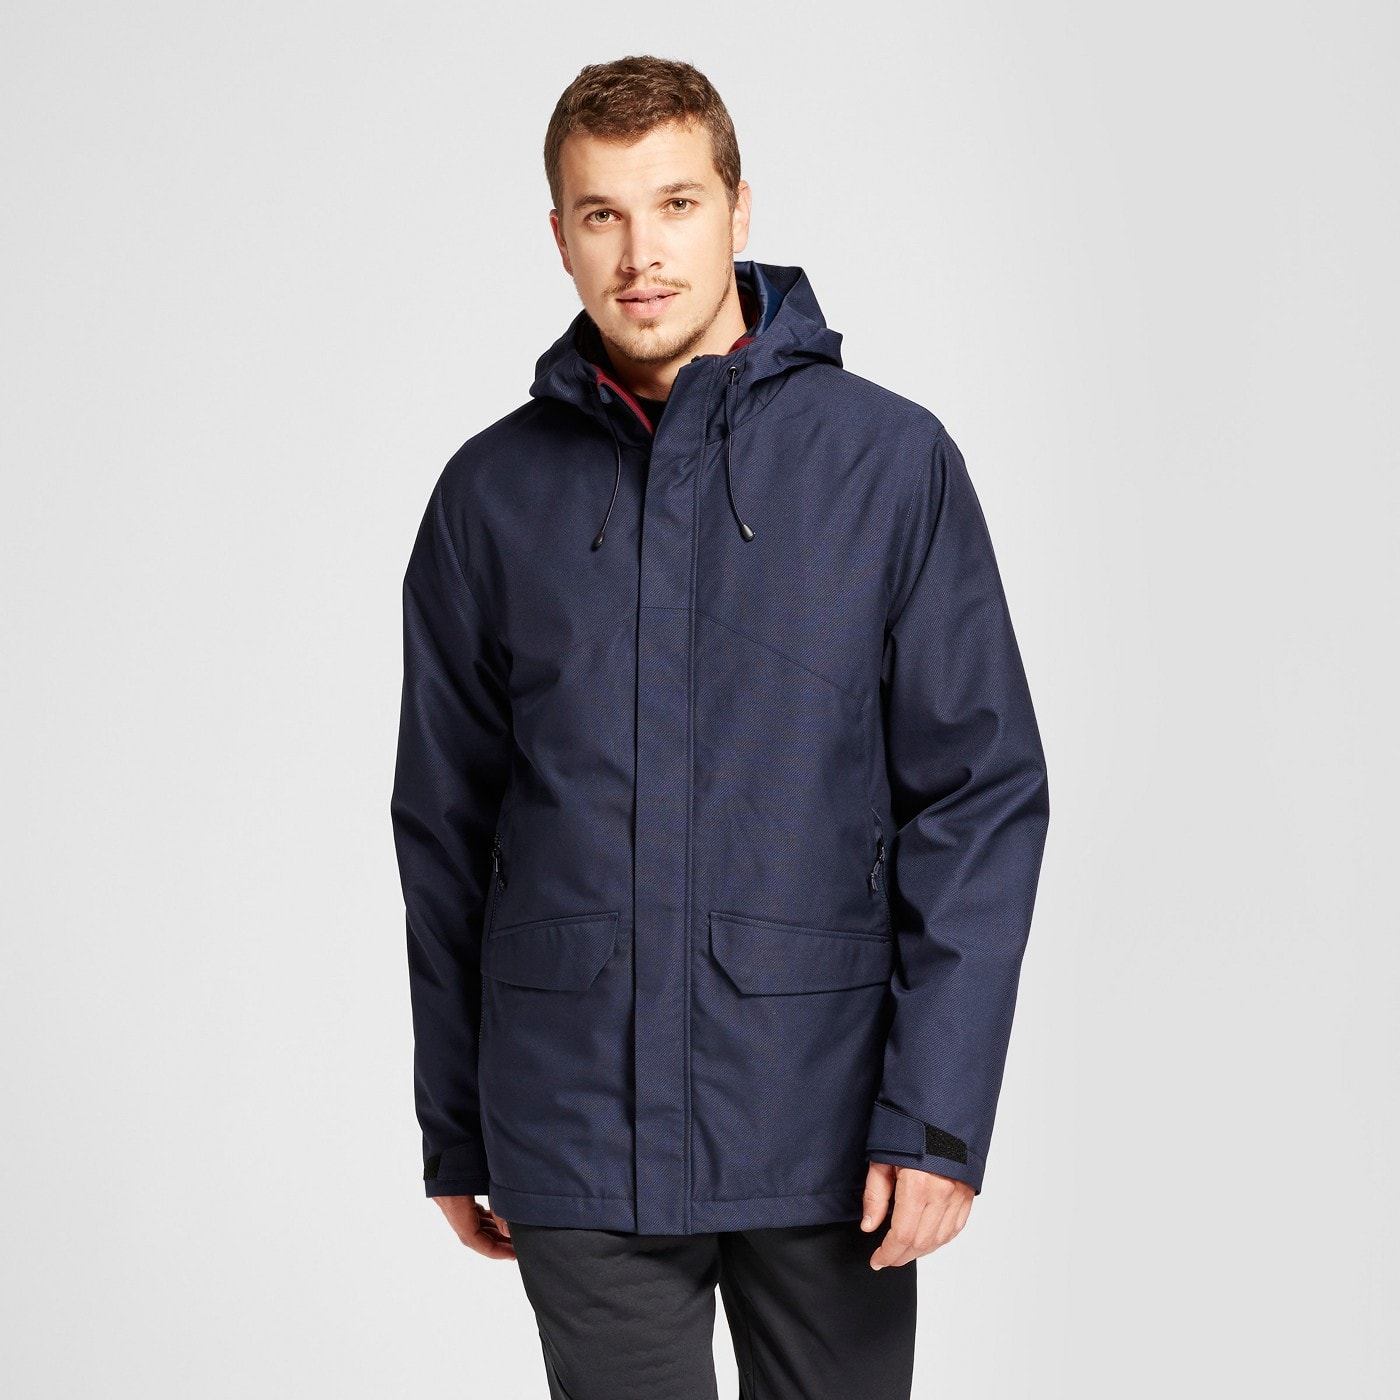 Men's 3-in-1 Jacket C9 Champion $23.98 (70% off) @ Target